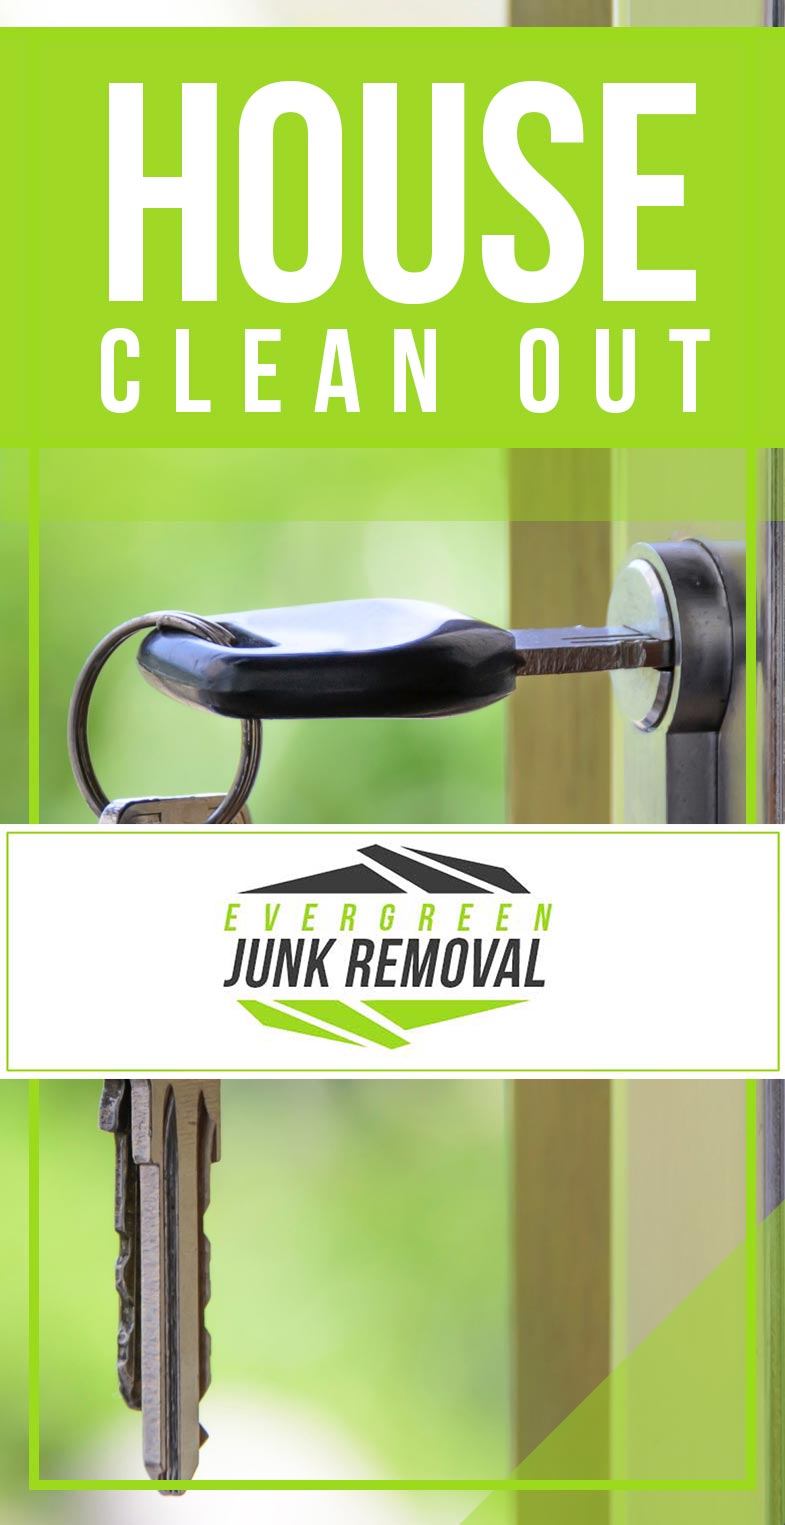 Junk Removal Loxahatchee House Clean Out